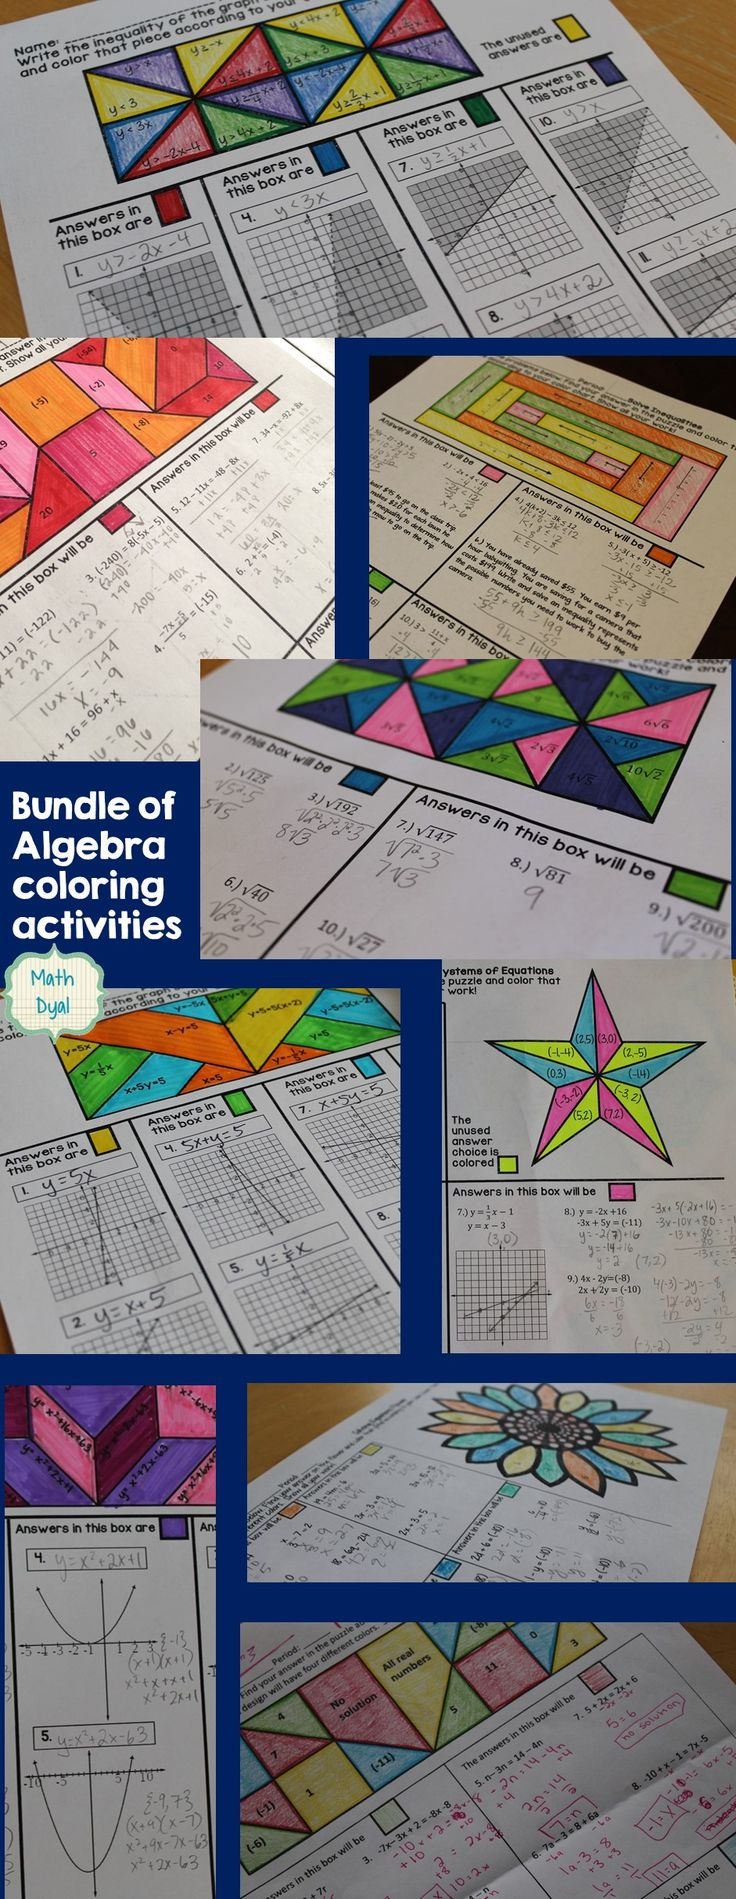 Algebra coloring activities for: solving equations, solving inequalities, graphing lines and linear inequalities, solve systems of equations, simplify radical expressions, and graph quadratics